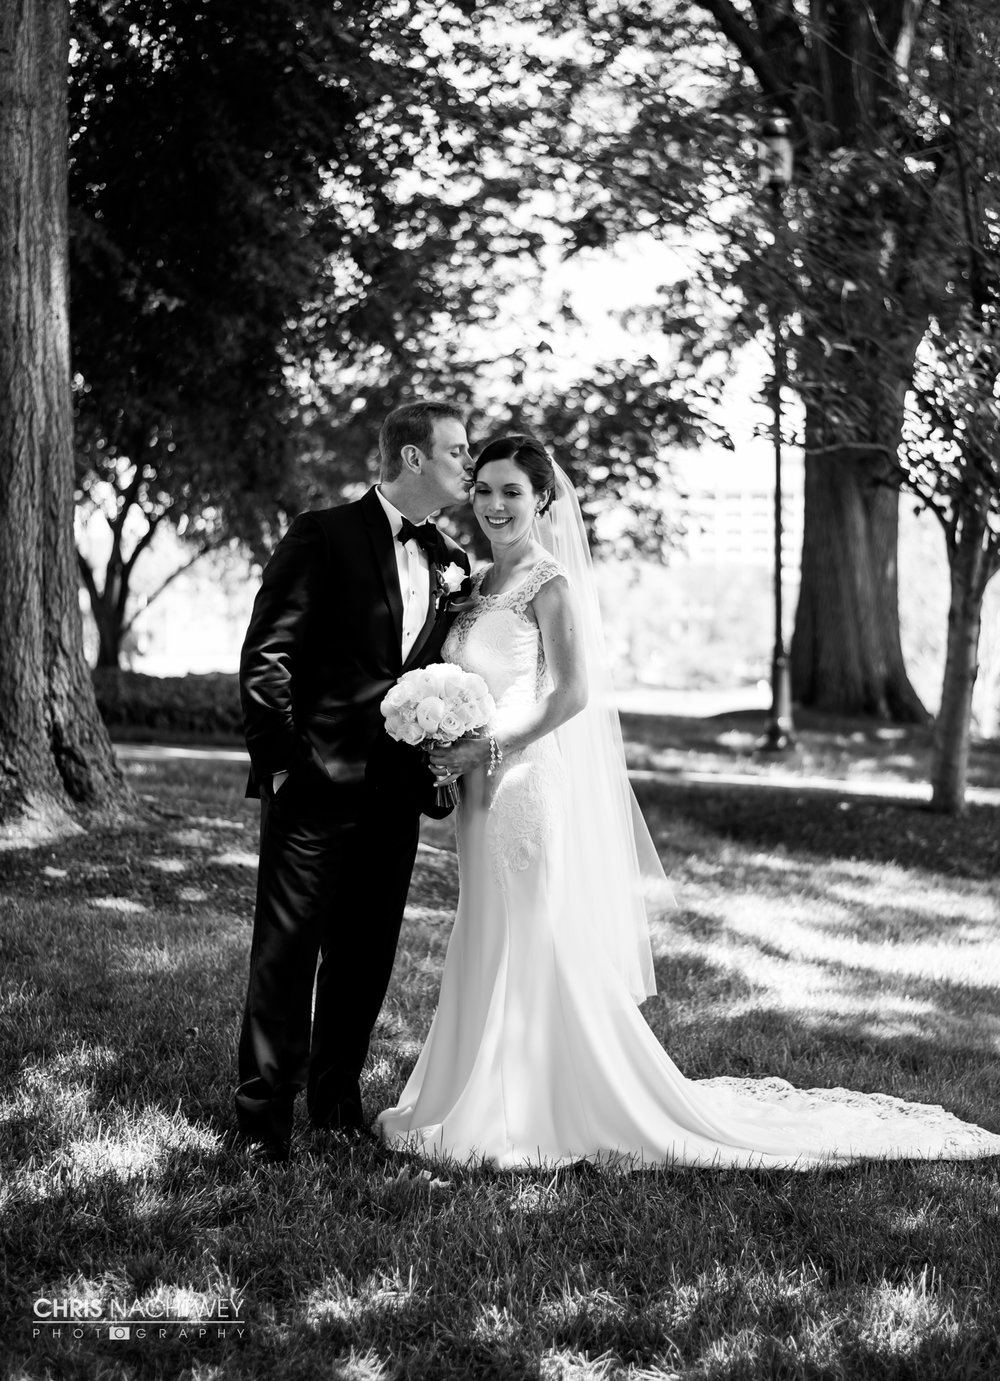 wedding-photographer-hartford-ct-chris-nachtwey.jpg